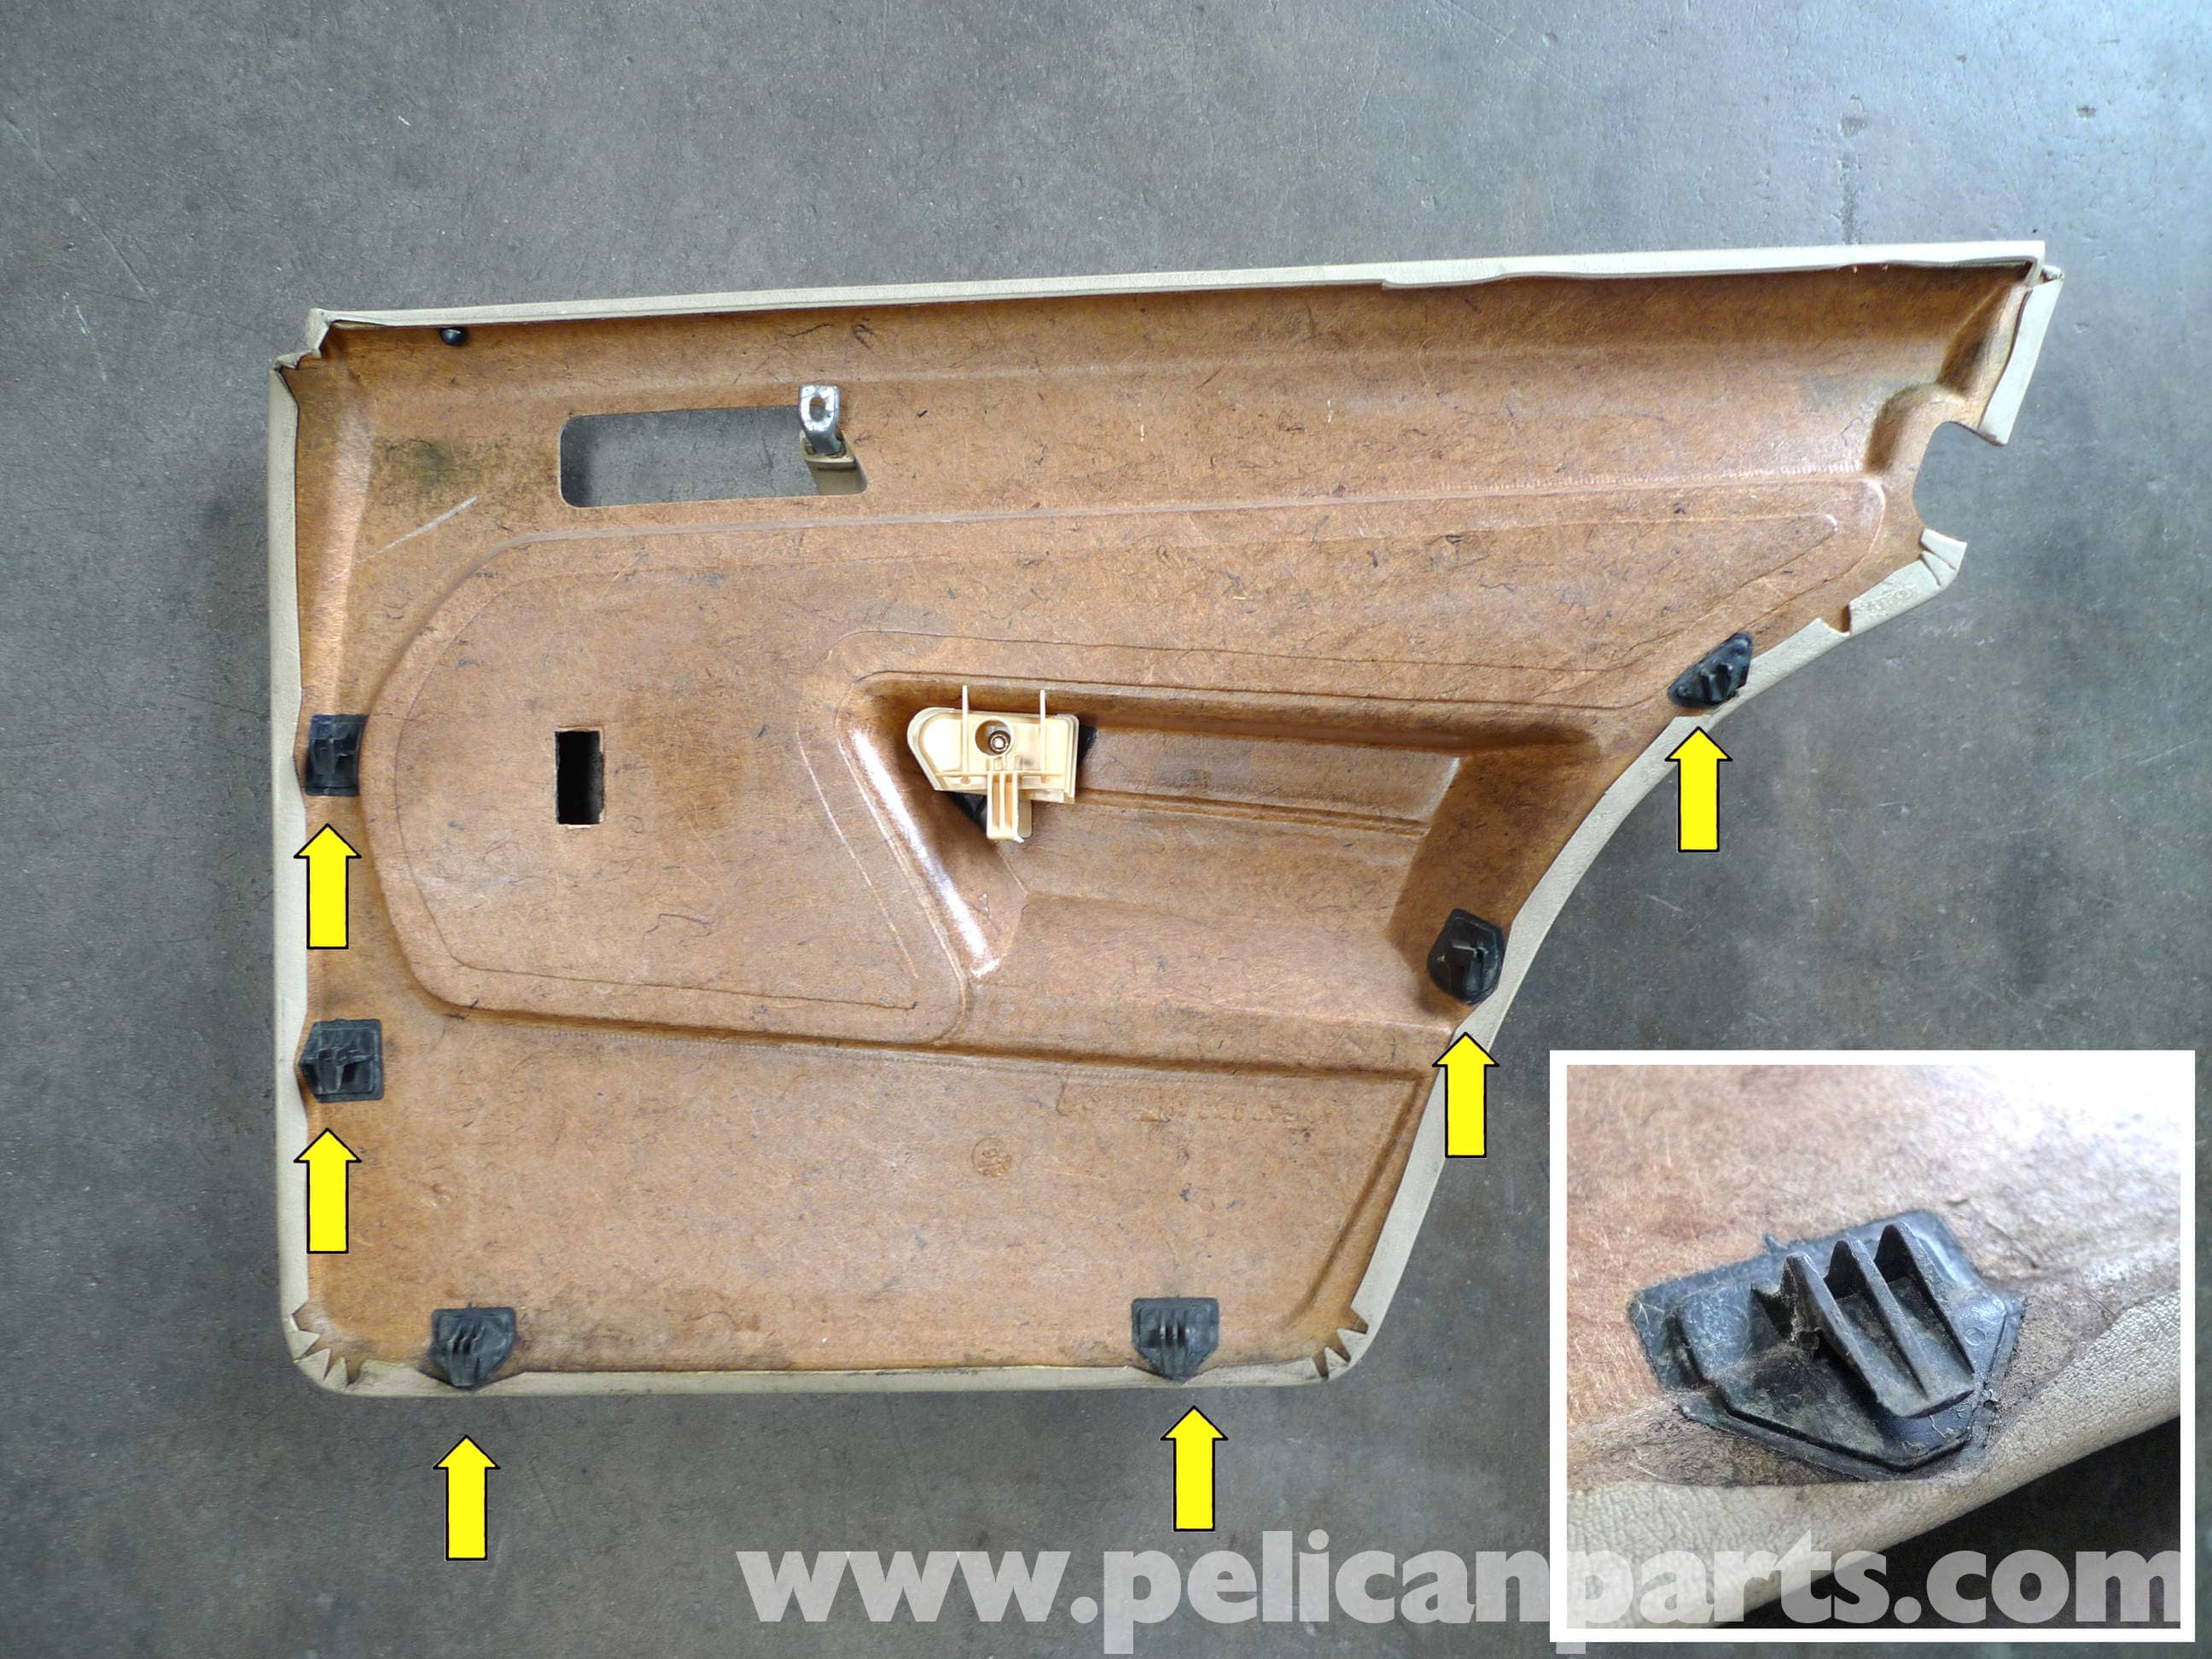 Mercedes benz 190e rear door panel removal w201 1987 1993 large image extra large image eventelaan Gallery